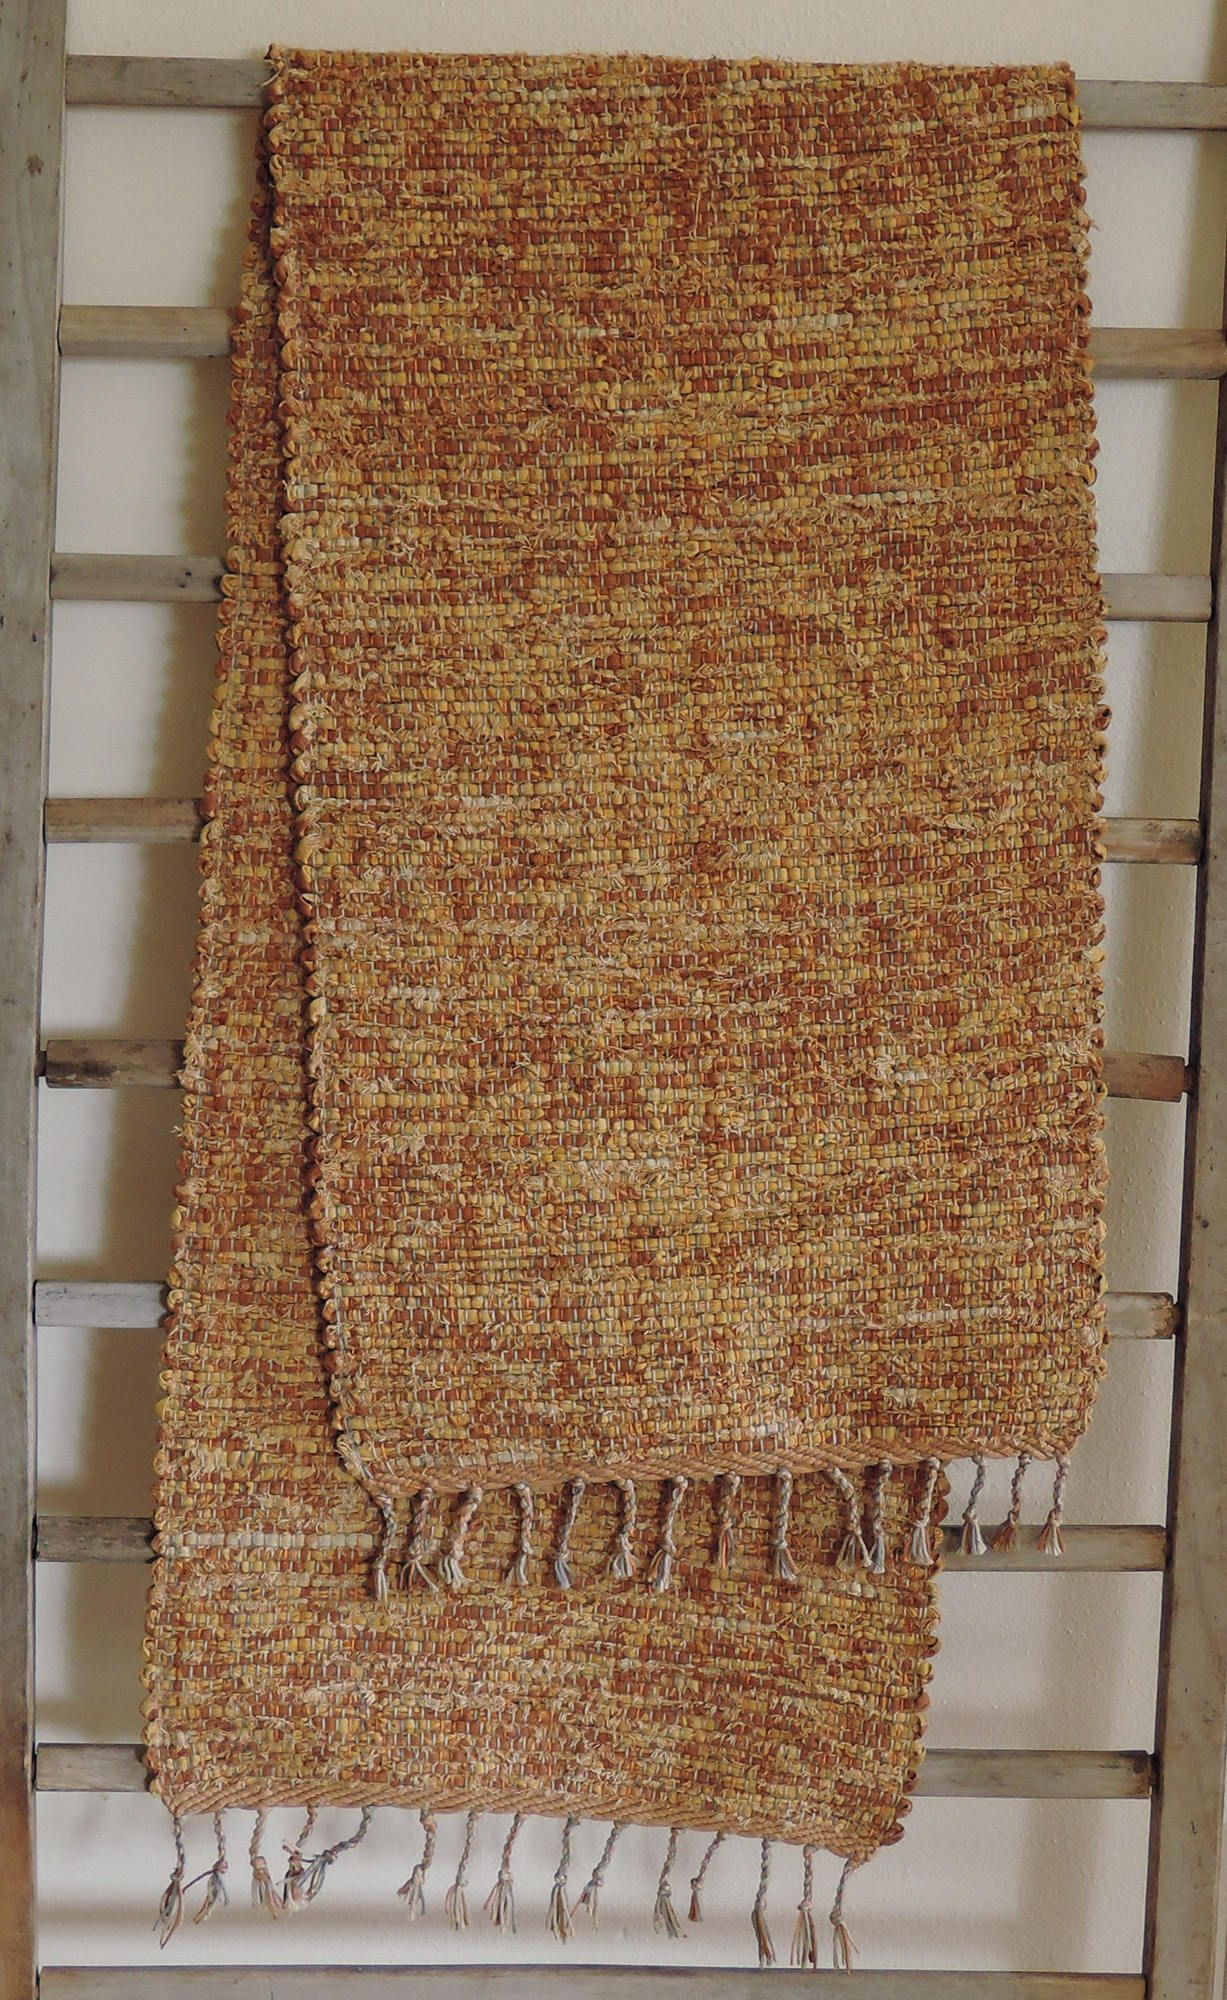 "Hand Woven Harvest Yellow Table Runner - 14"" x 56"" by StudioatRedTopRanch on Etsy"